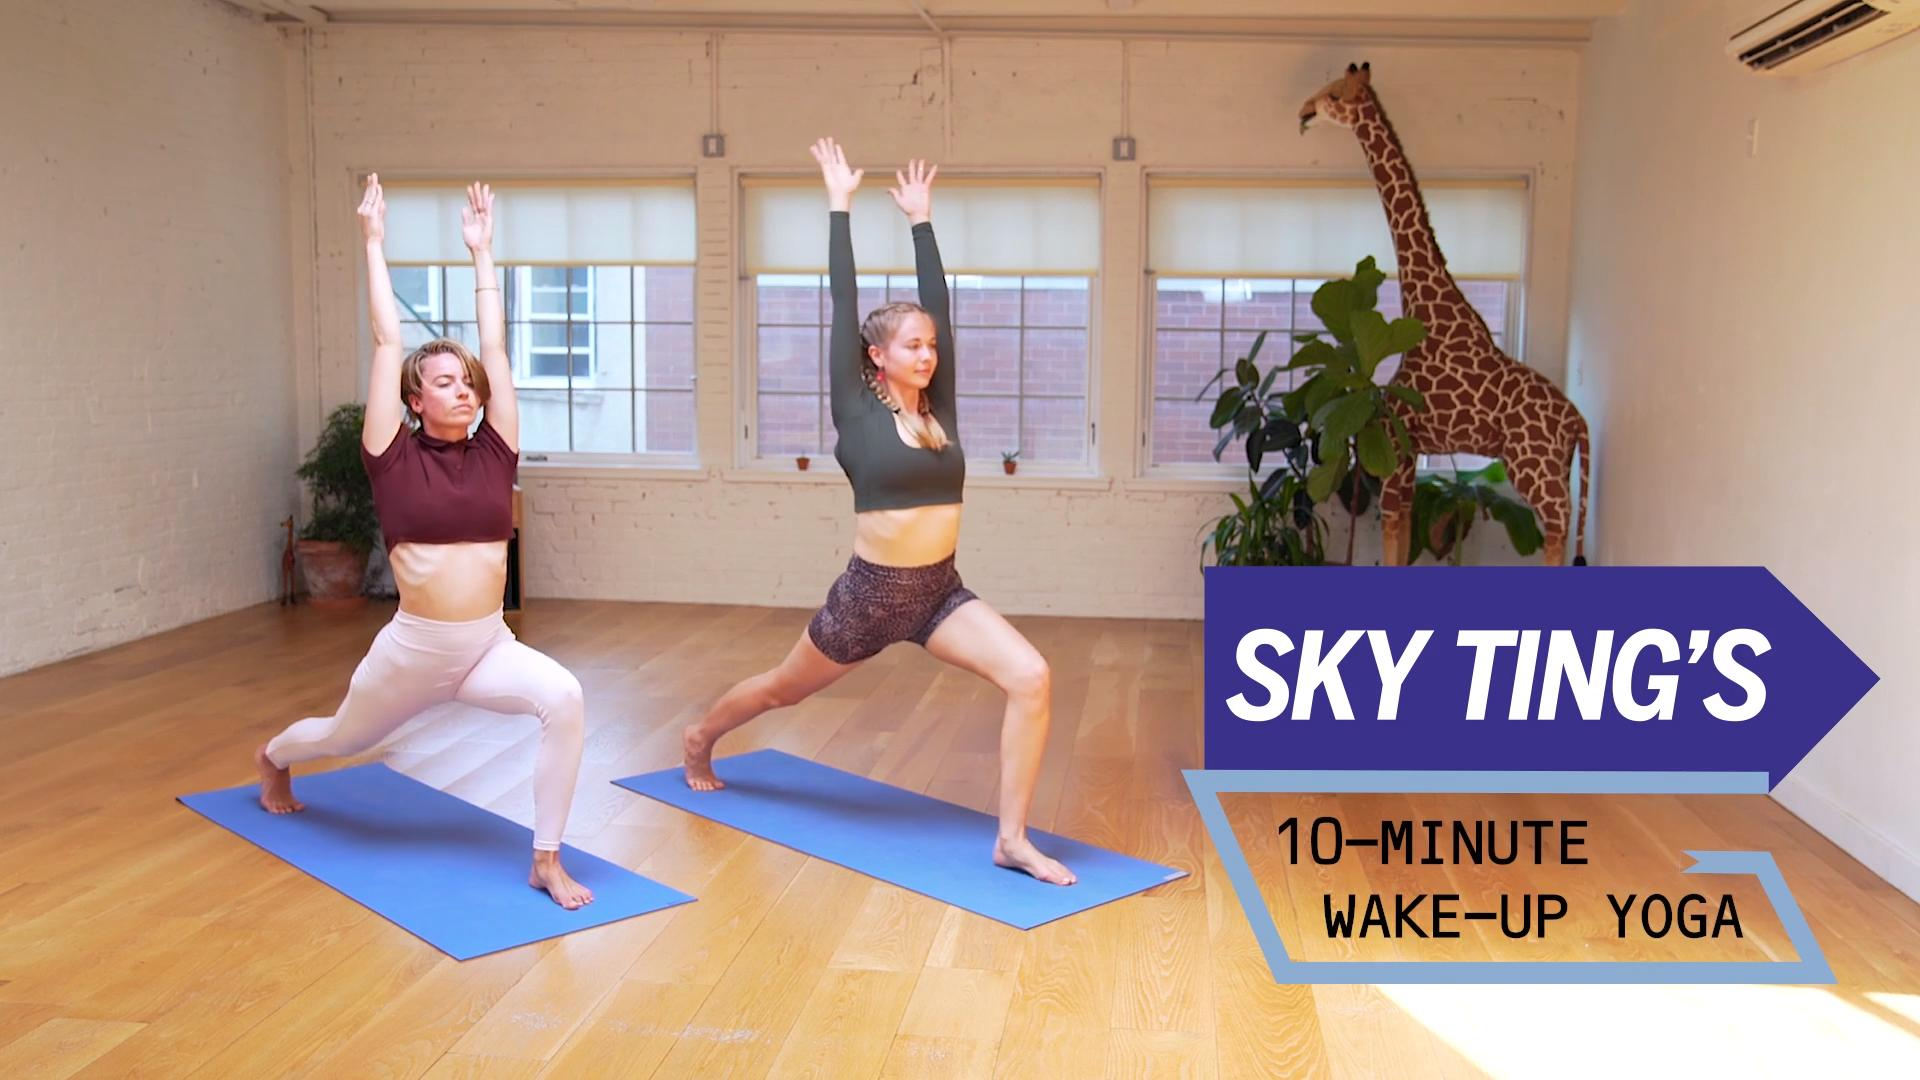 This 10-Minute Wake-Up Yoga Flow Is the Perfect Start to Your Morning